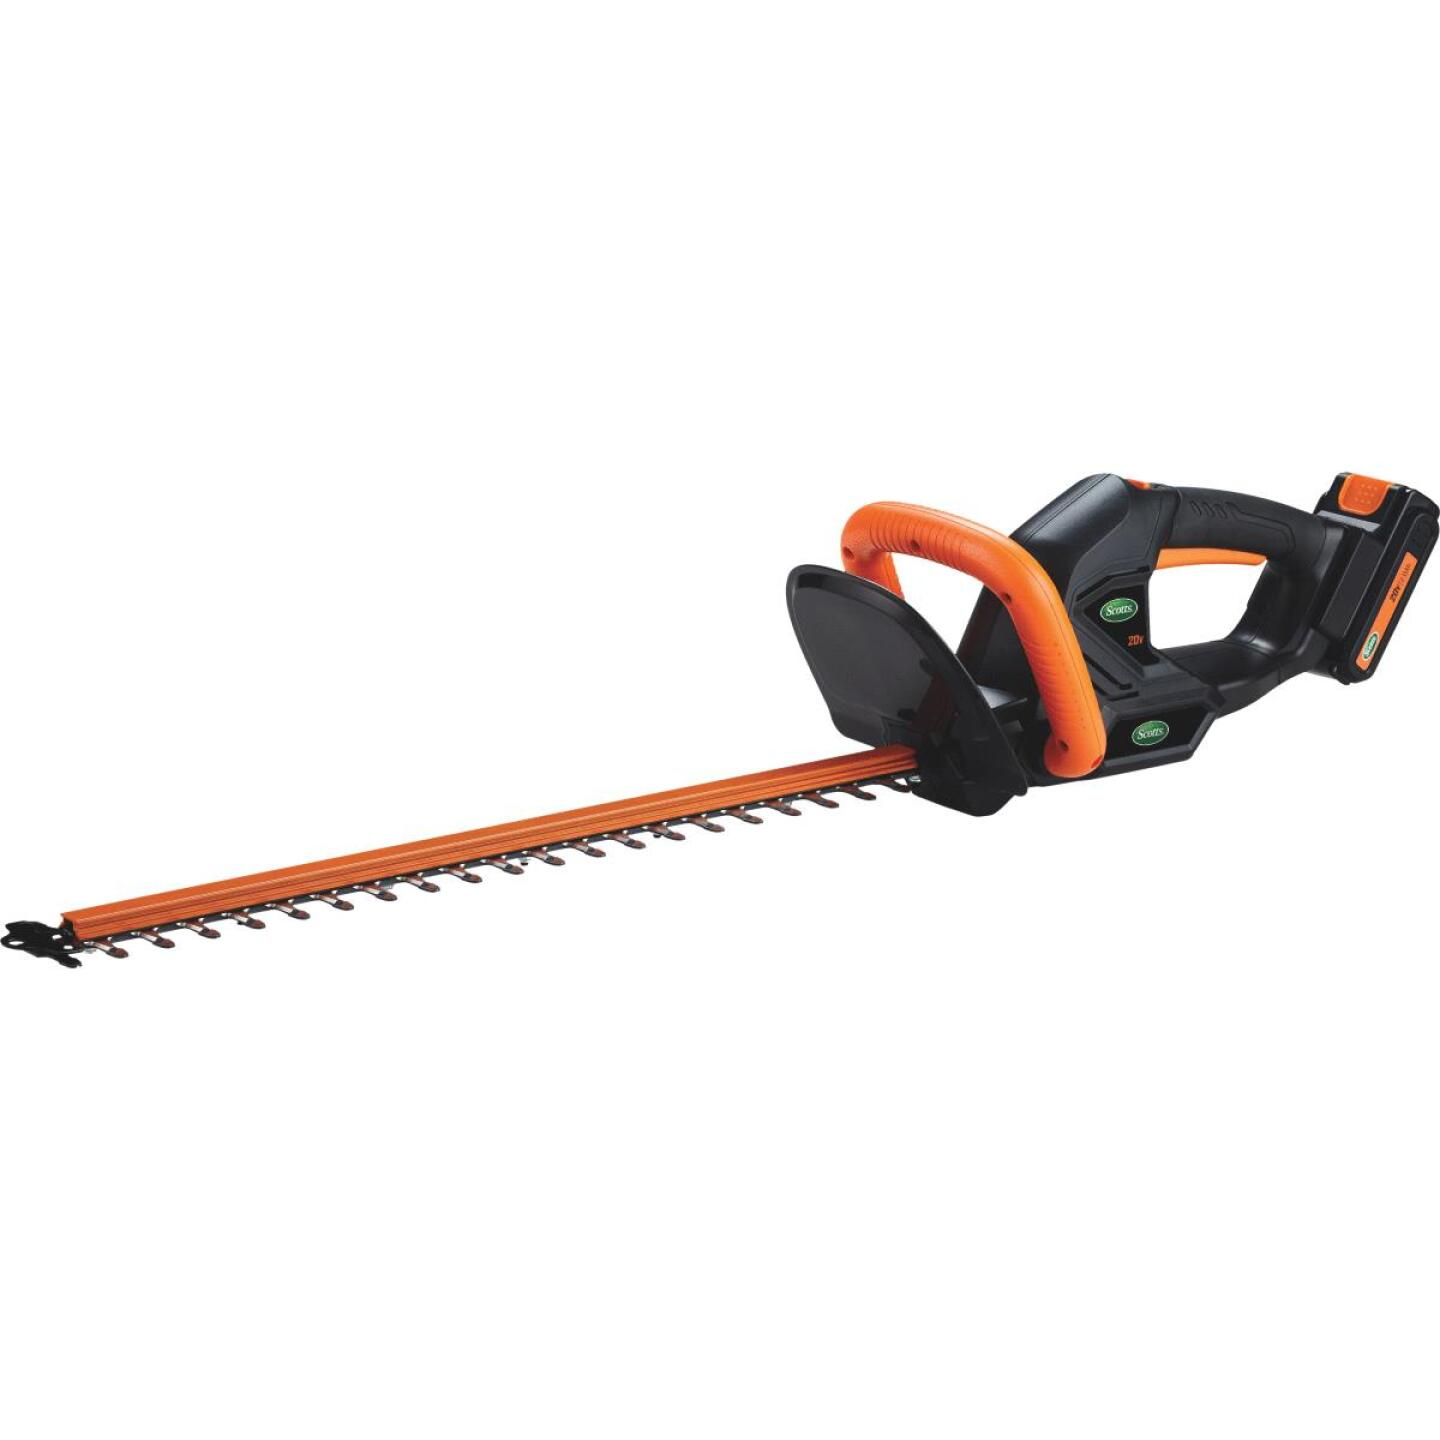 Scotts 22 In. 20V Lithium Ion Cordless Hedge Trimmer Image 1